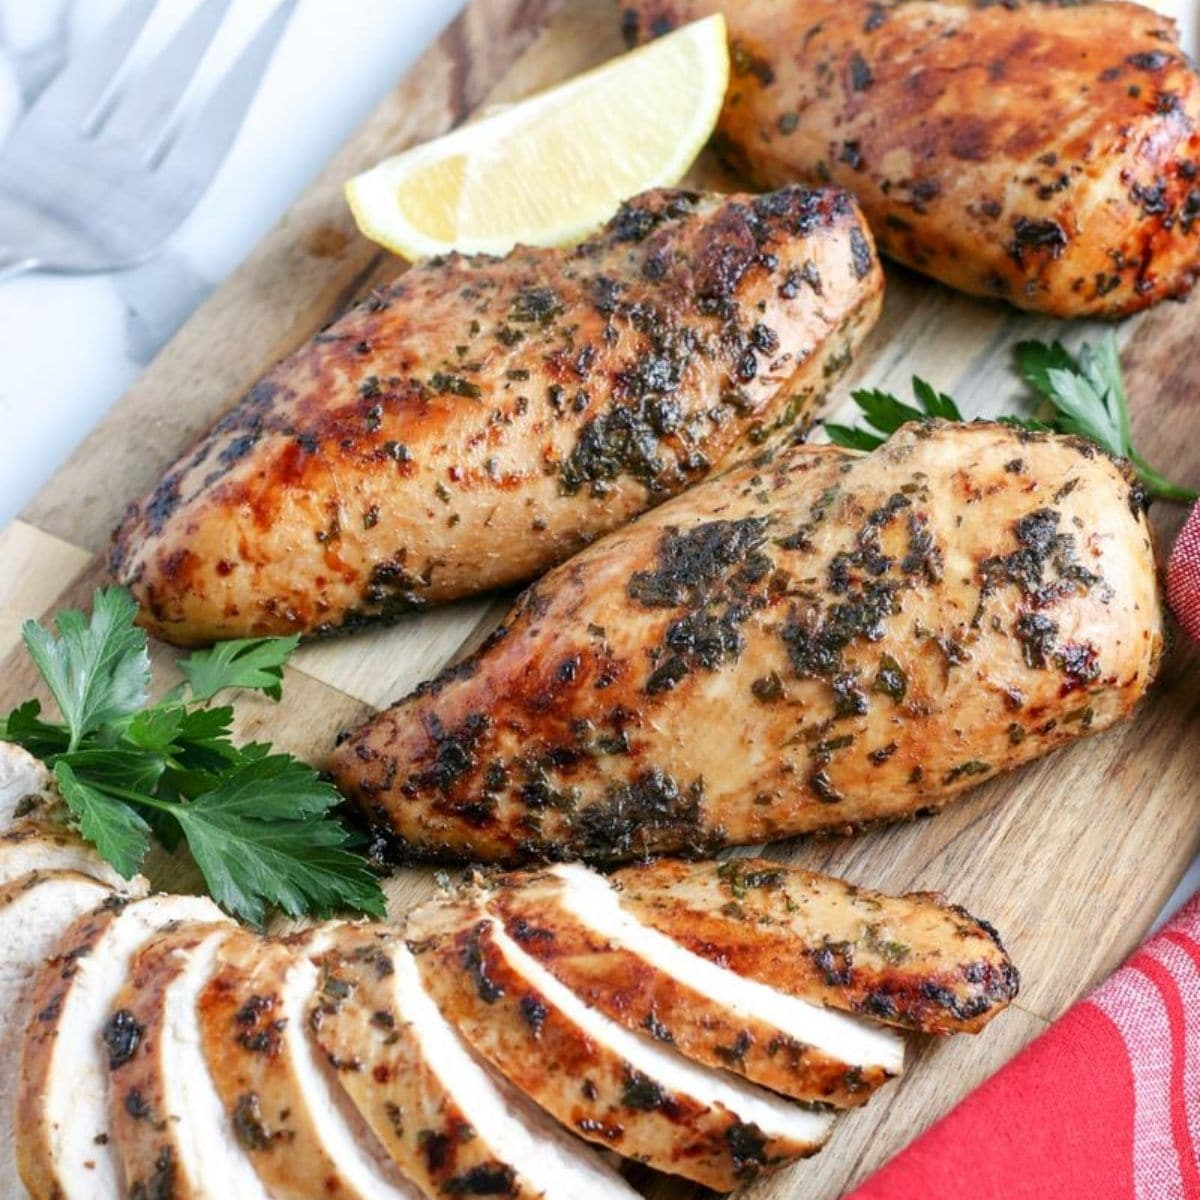 sliced air fyer chicken breasts on a cutting board with lemon and herbs